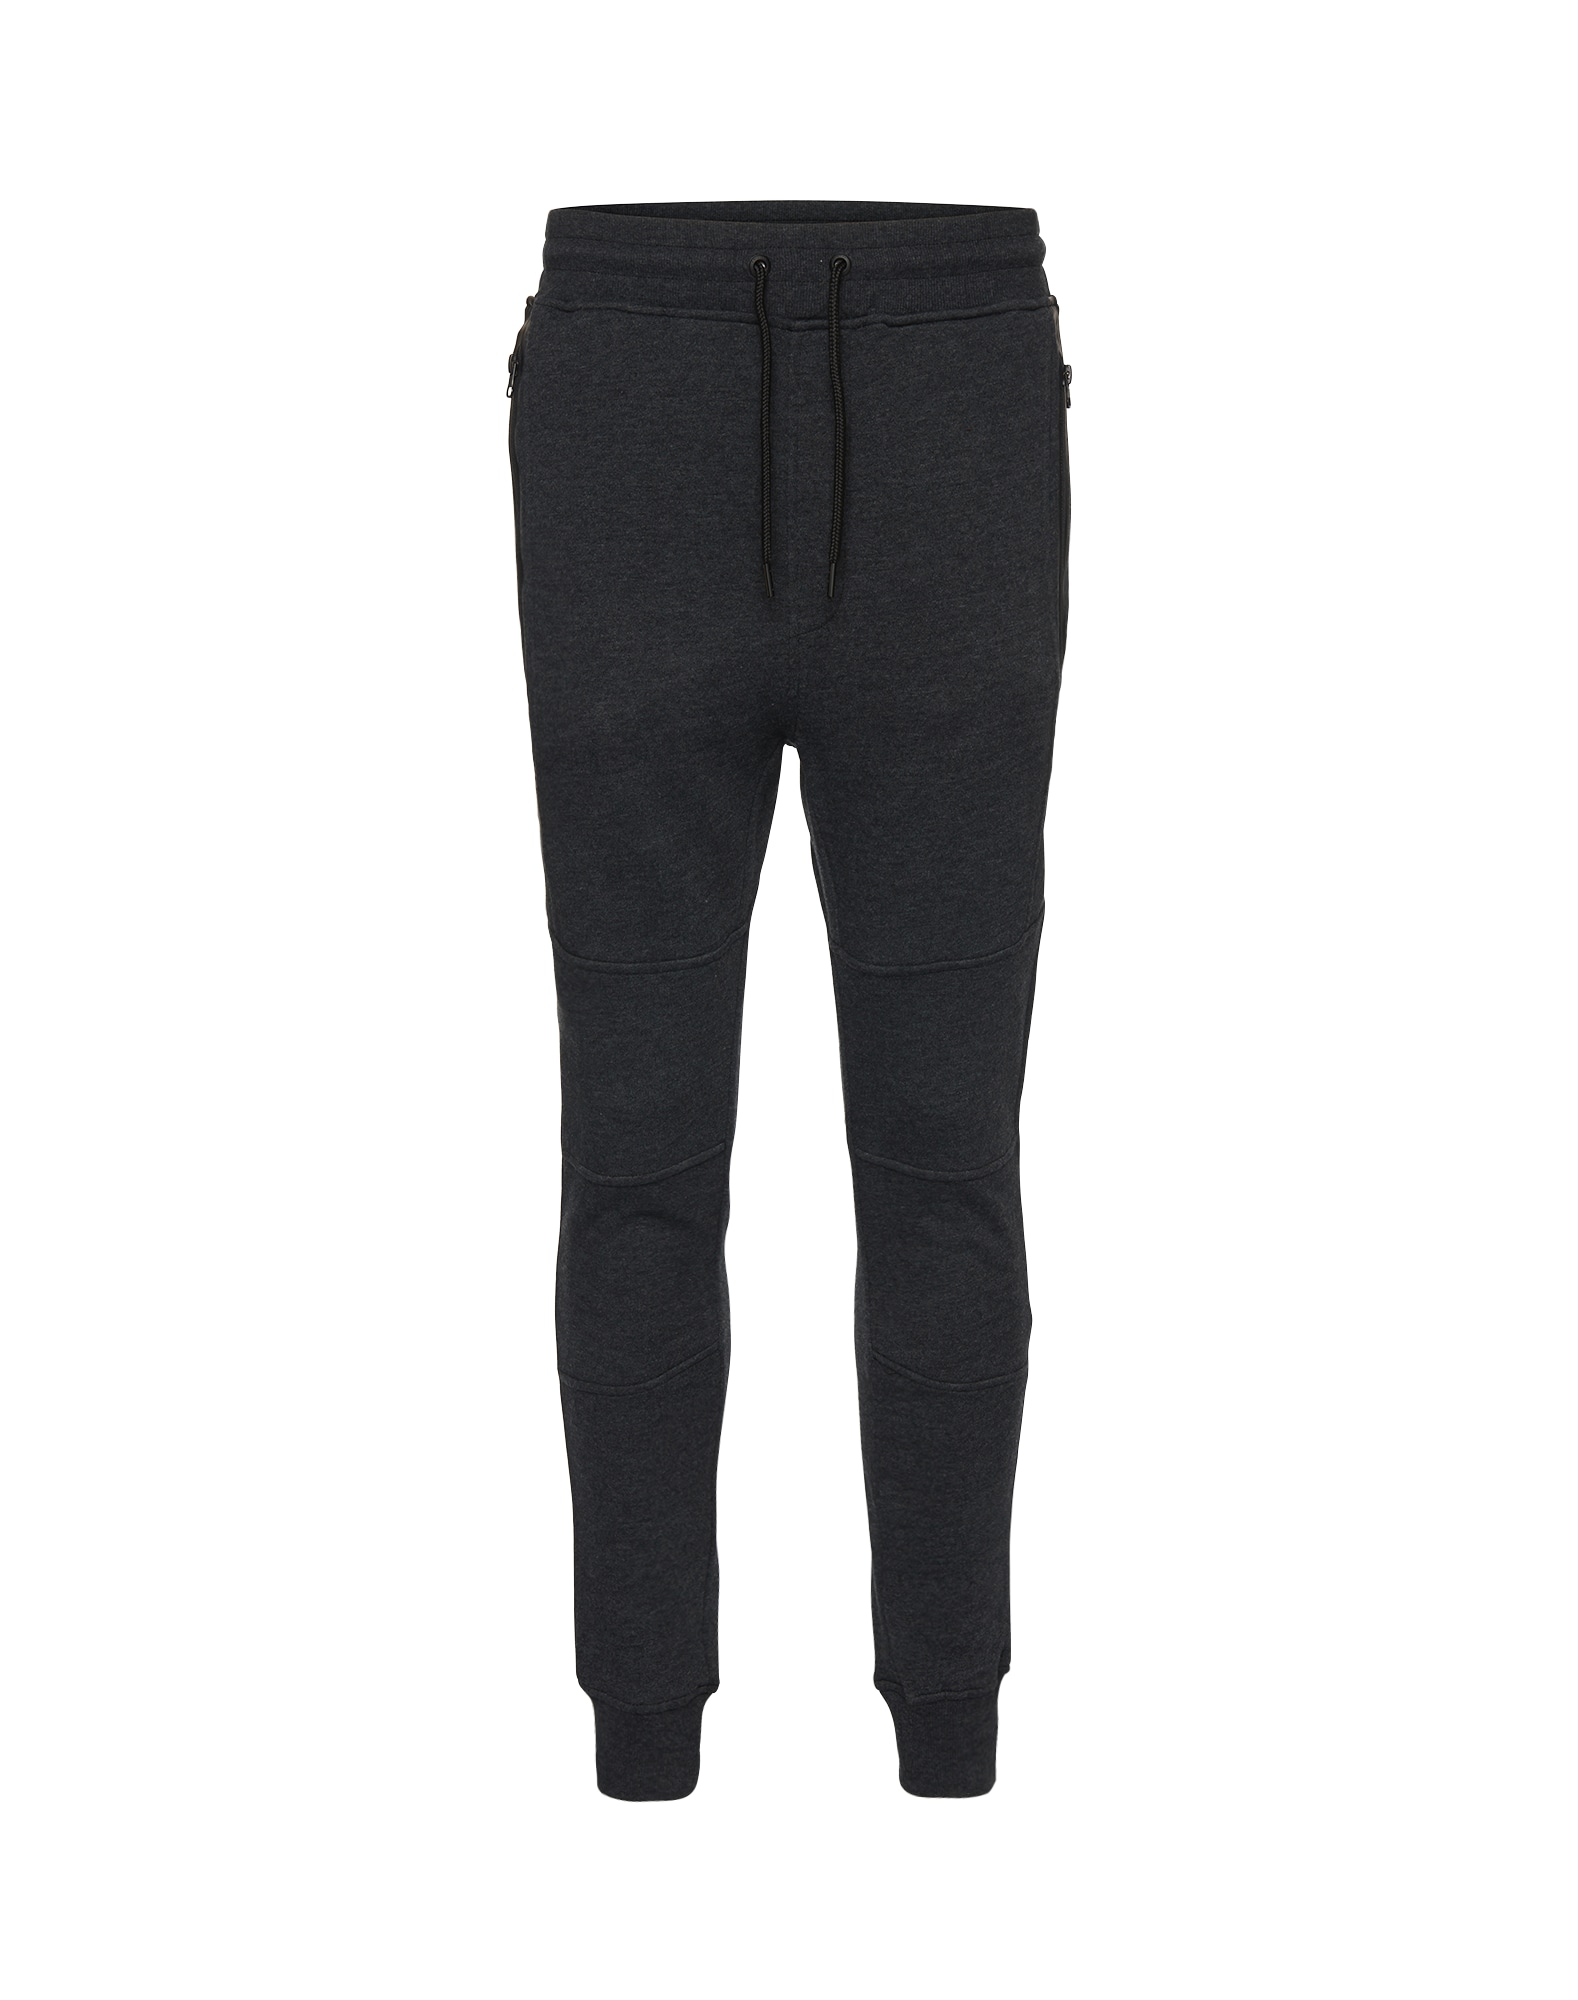 Jack & Jones - Will Loungebroek / Sweatpants Grijs Melange - XL